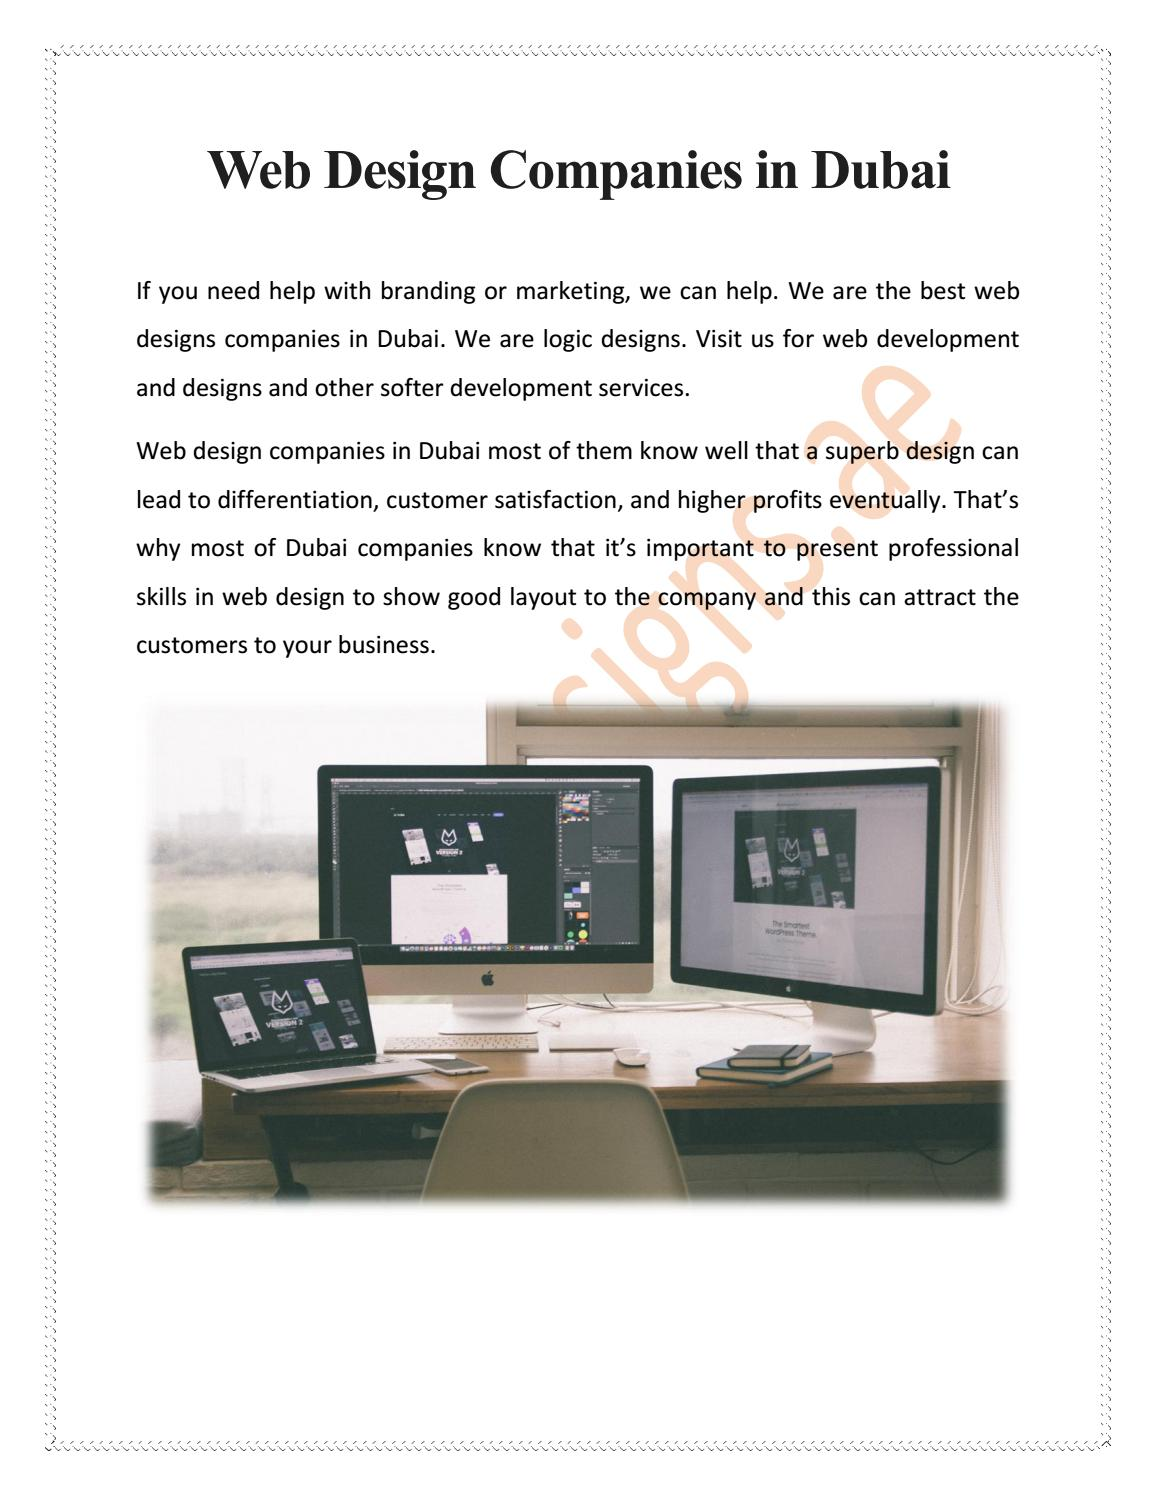 Web Design Companies In Dubai By Mitchellhayden12 Issuu